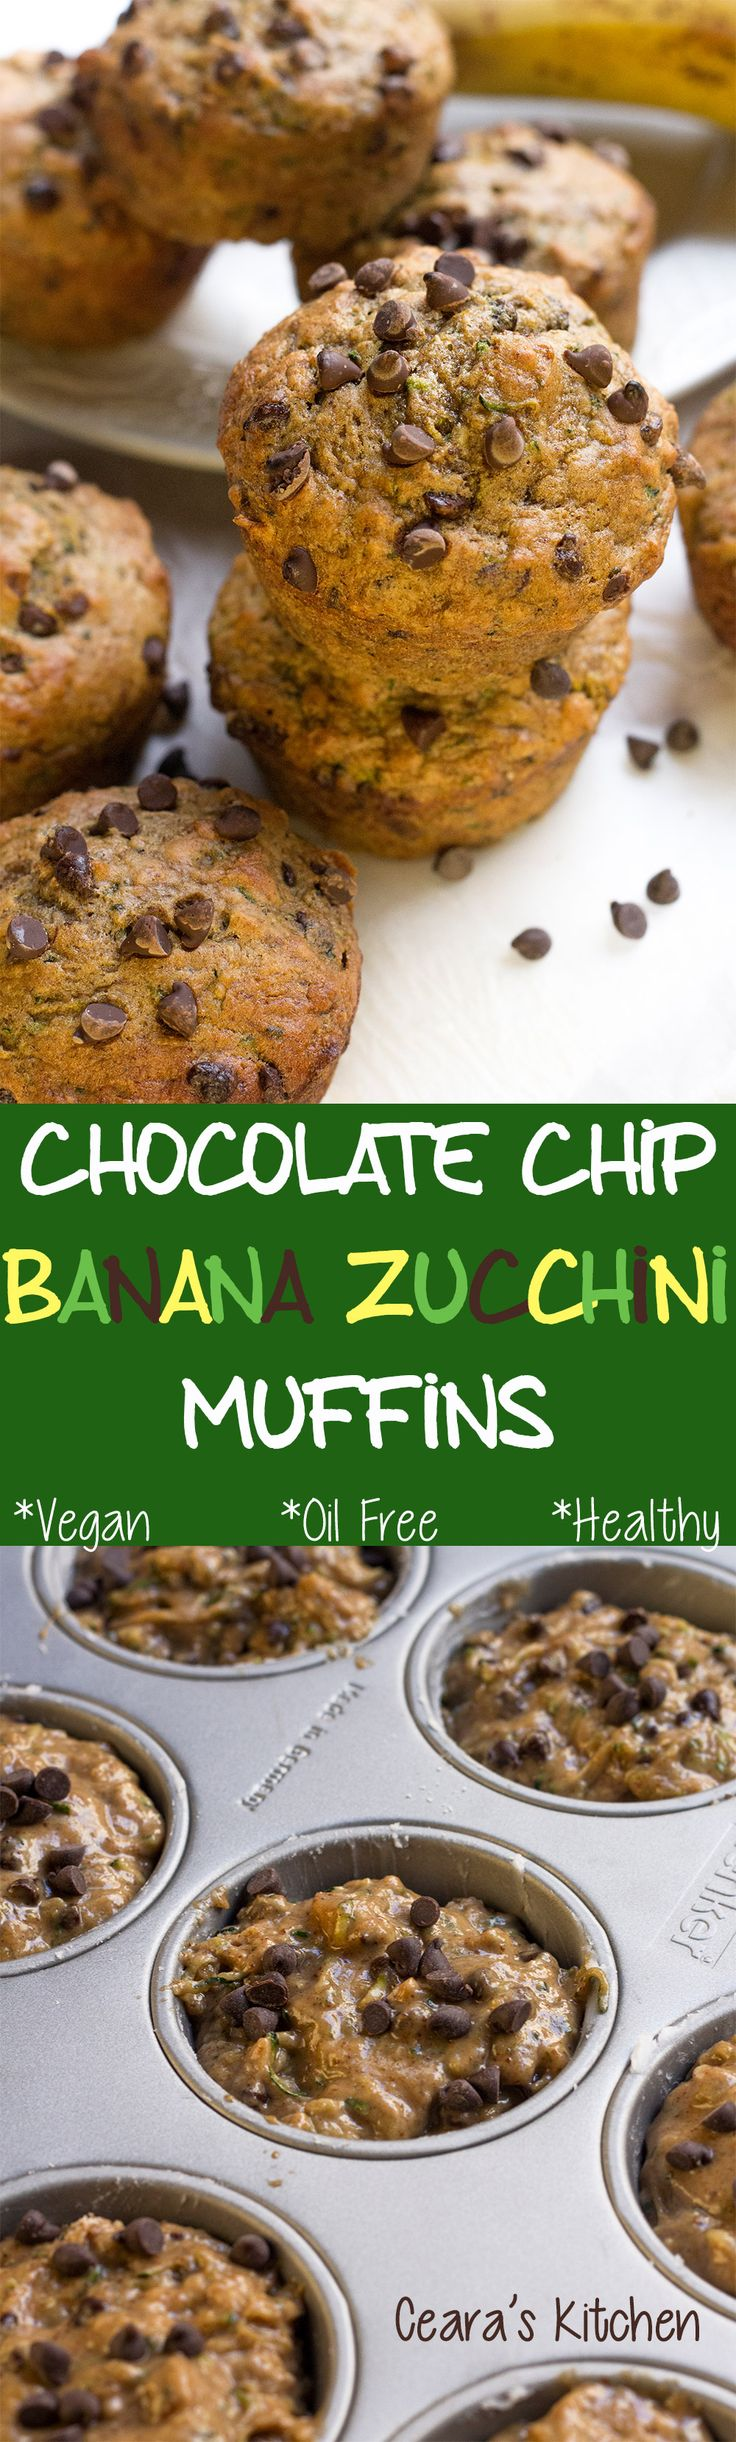 Chocolate Chip Banana Zucchini Muffins Vegan Oil Free Healthy - Shhhh.... the kids don't need to know that these are good for them.